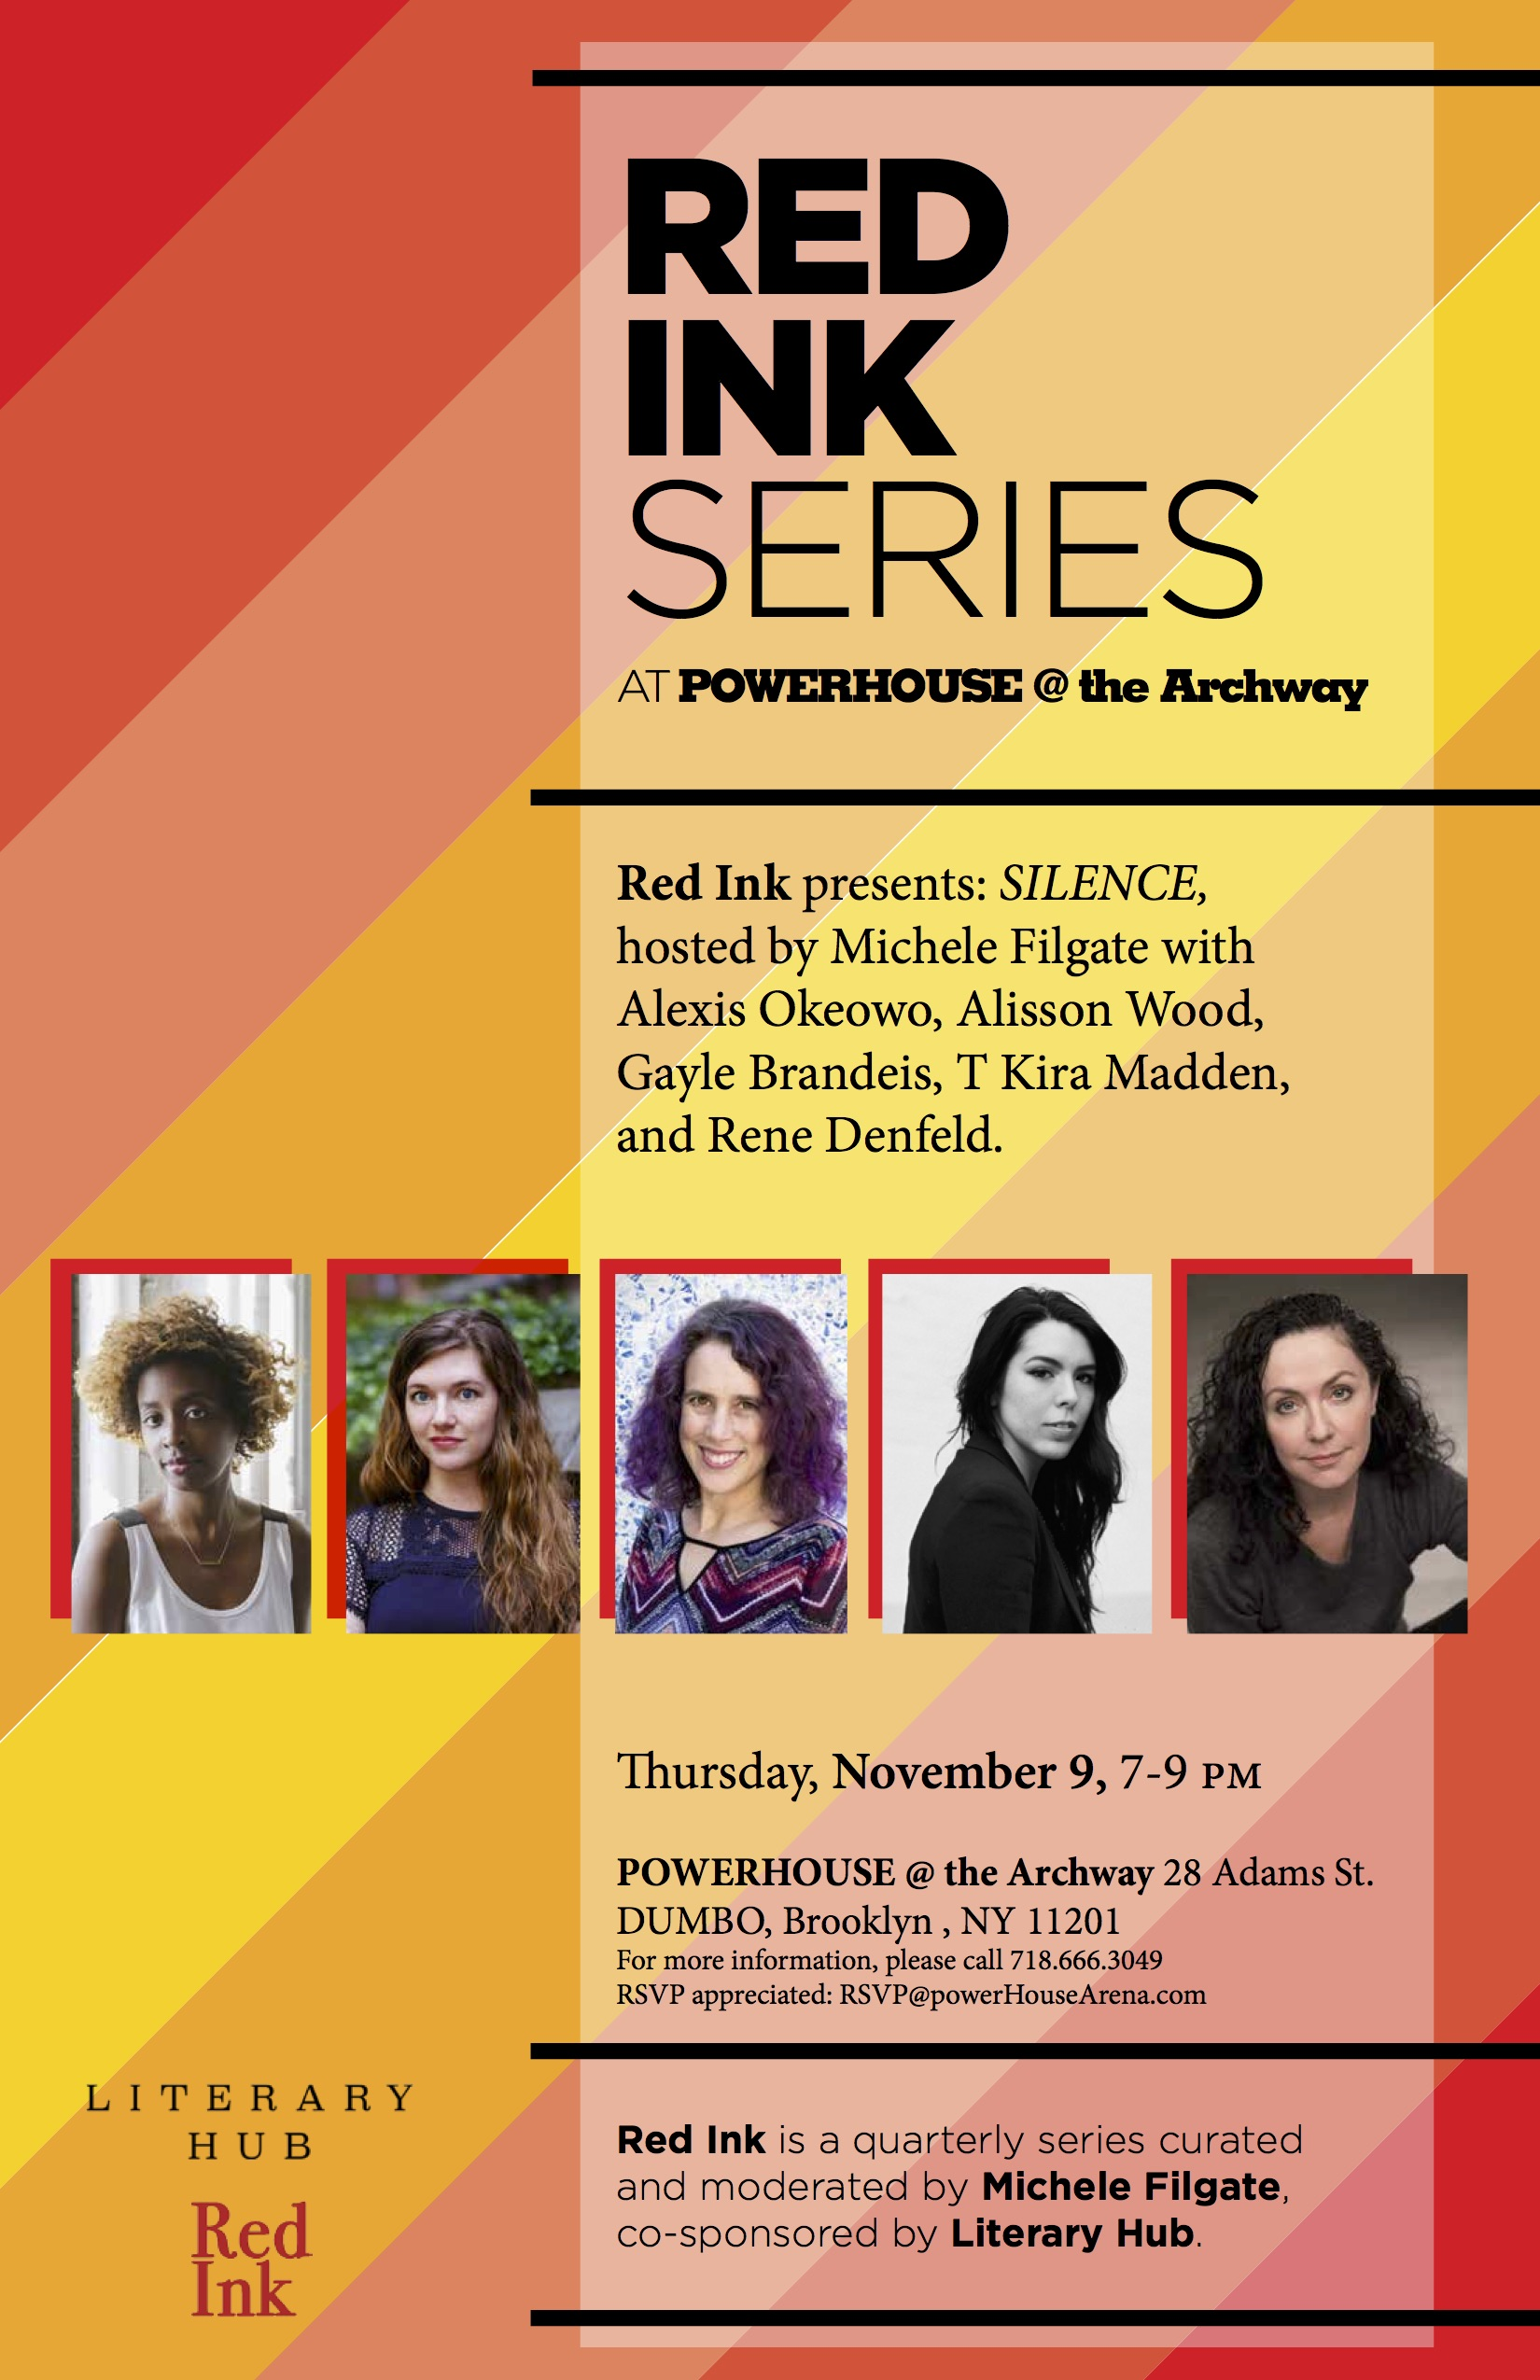 Red Ink Series: SILENCE, hosted by Michele Filgate with Gayle Brandeis, Alexis Okeowo, Rene Denfeld, Alisson Wood and T Kira Madden